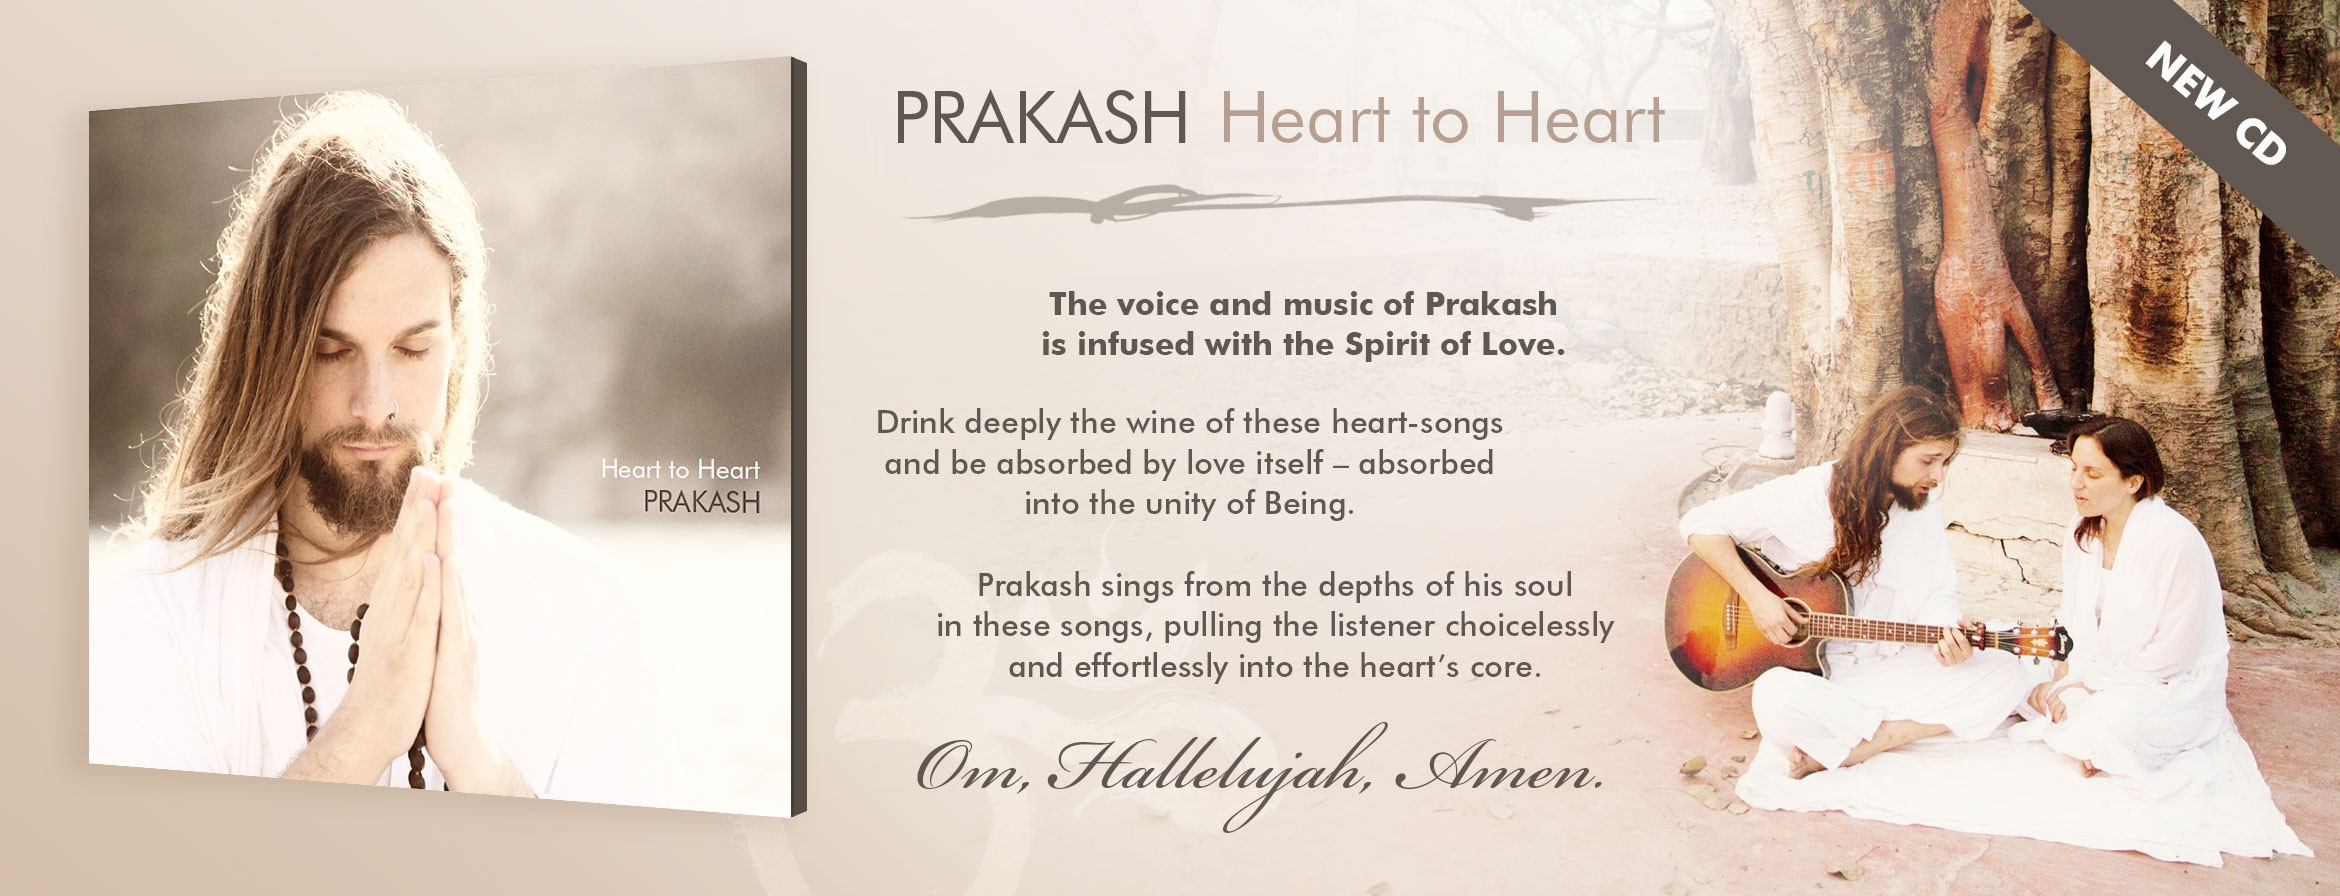 Prakash, Heart to Heart